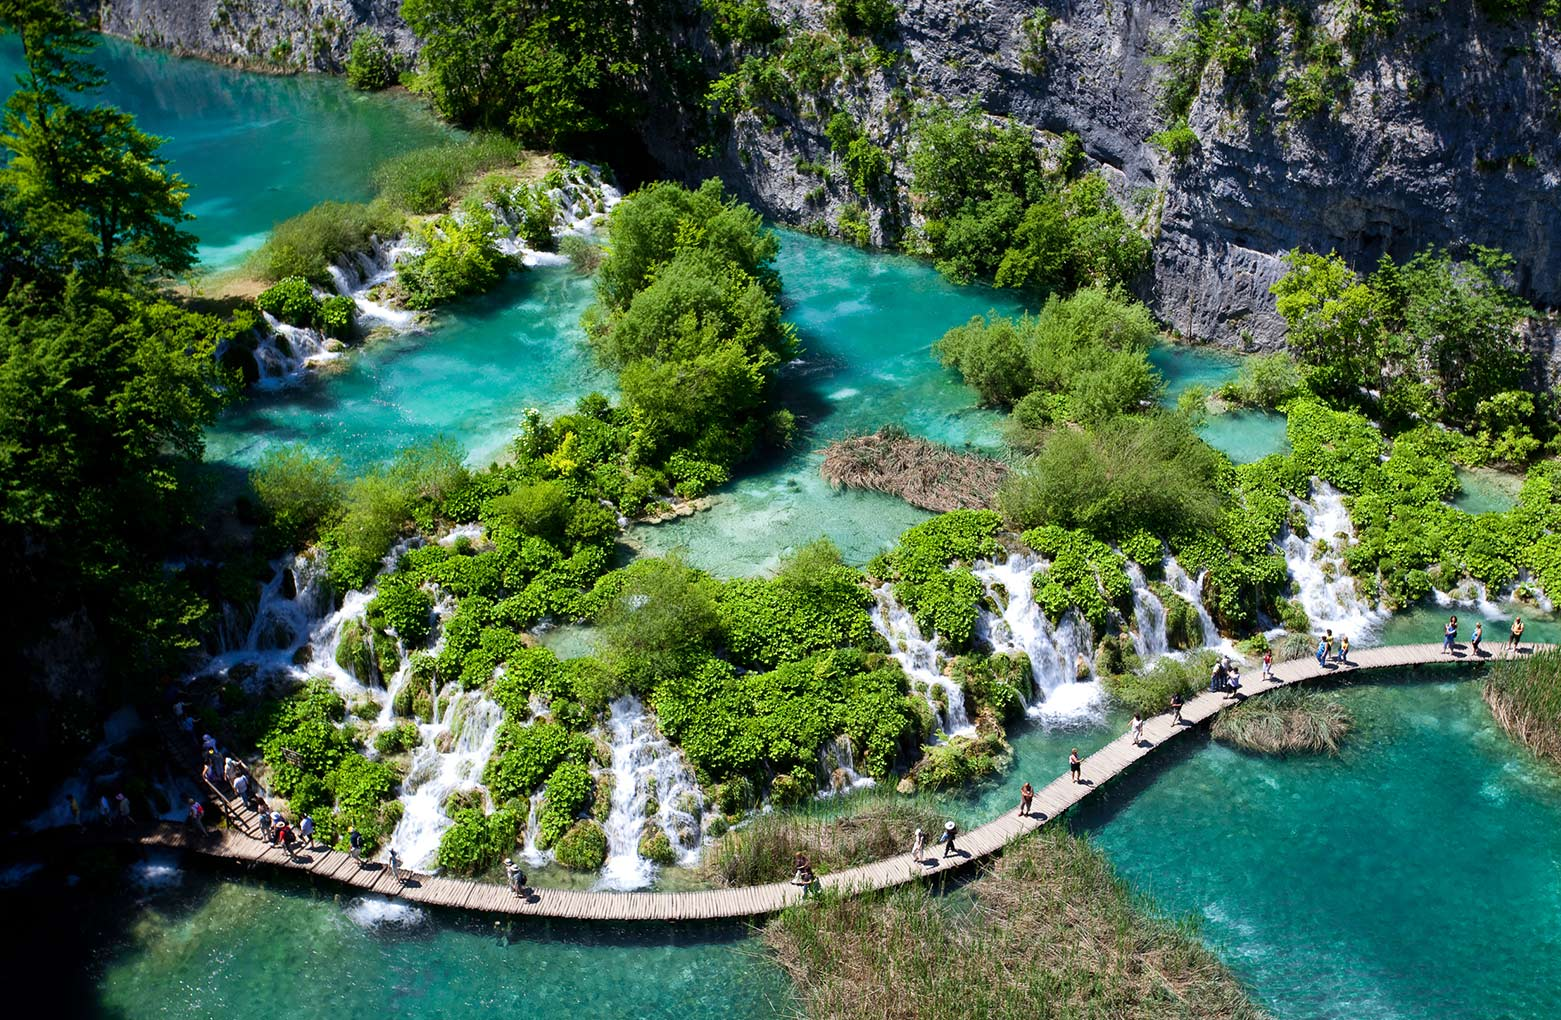 Hiking in stunning nature - Plitvice Lakes National Park